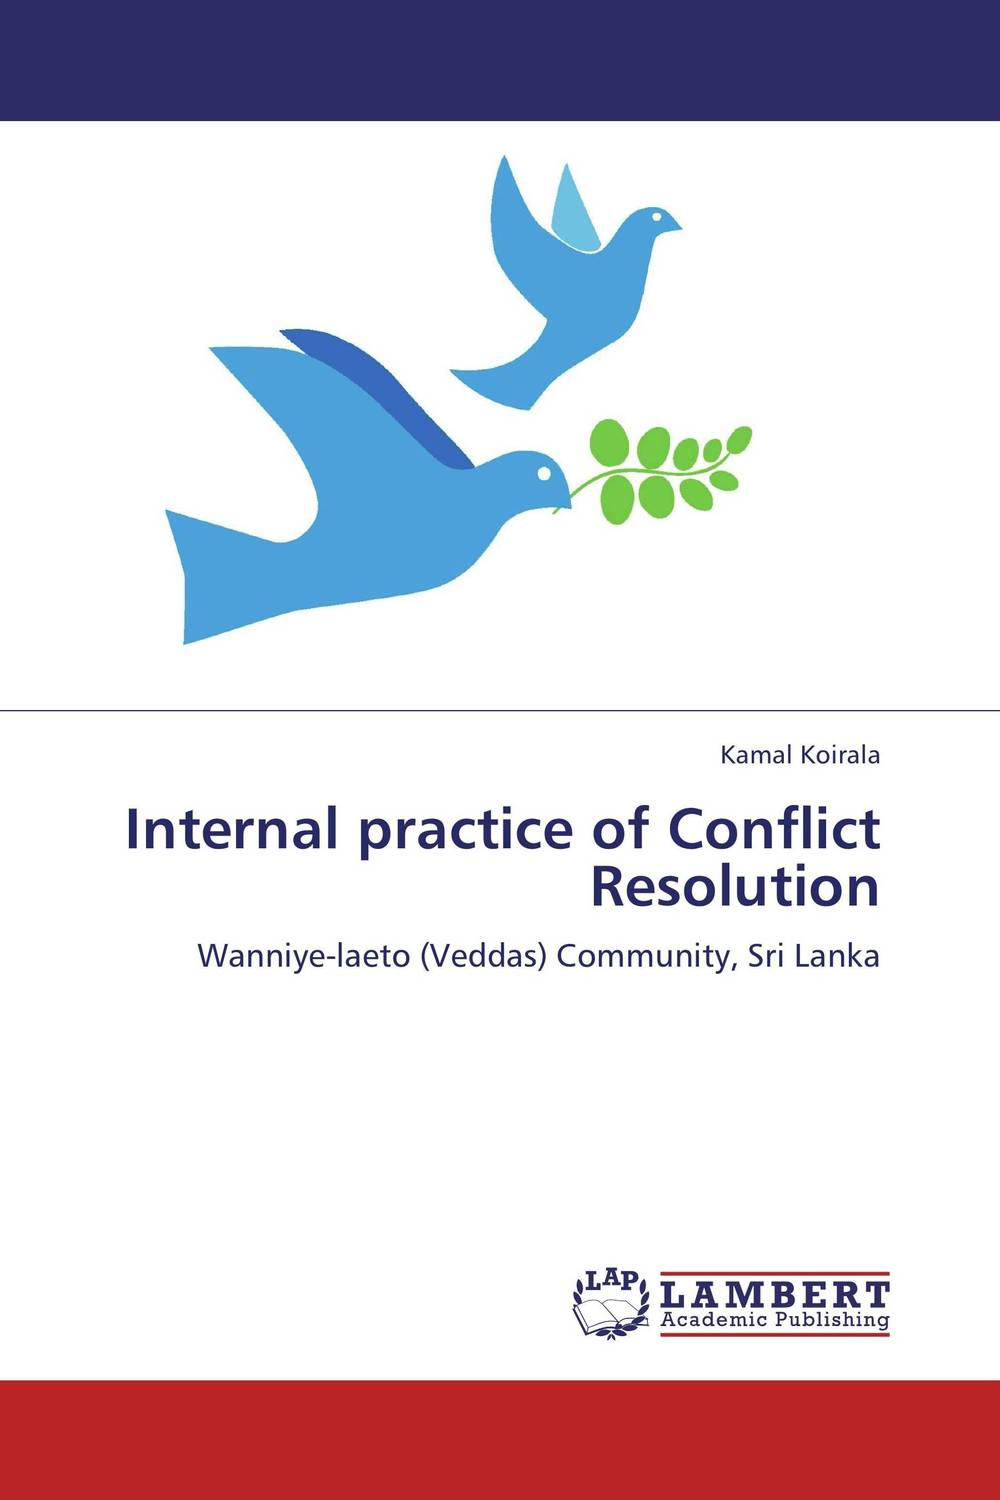 Internal practice of Conflict Resolution a theoritical study of intra state conflicts